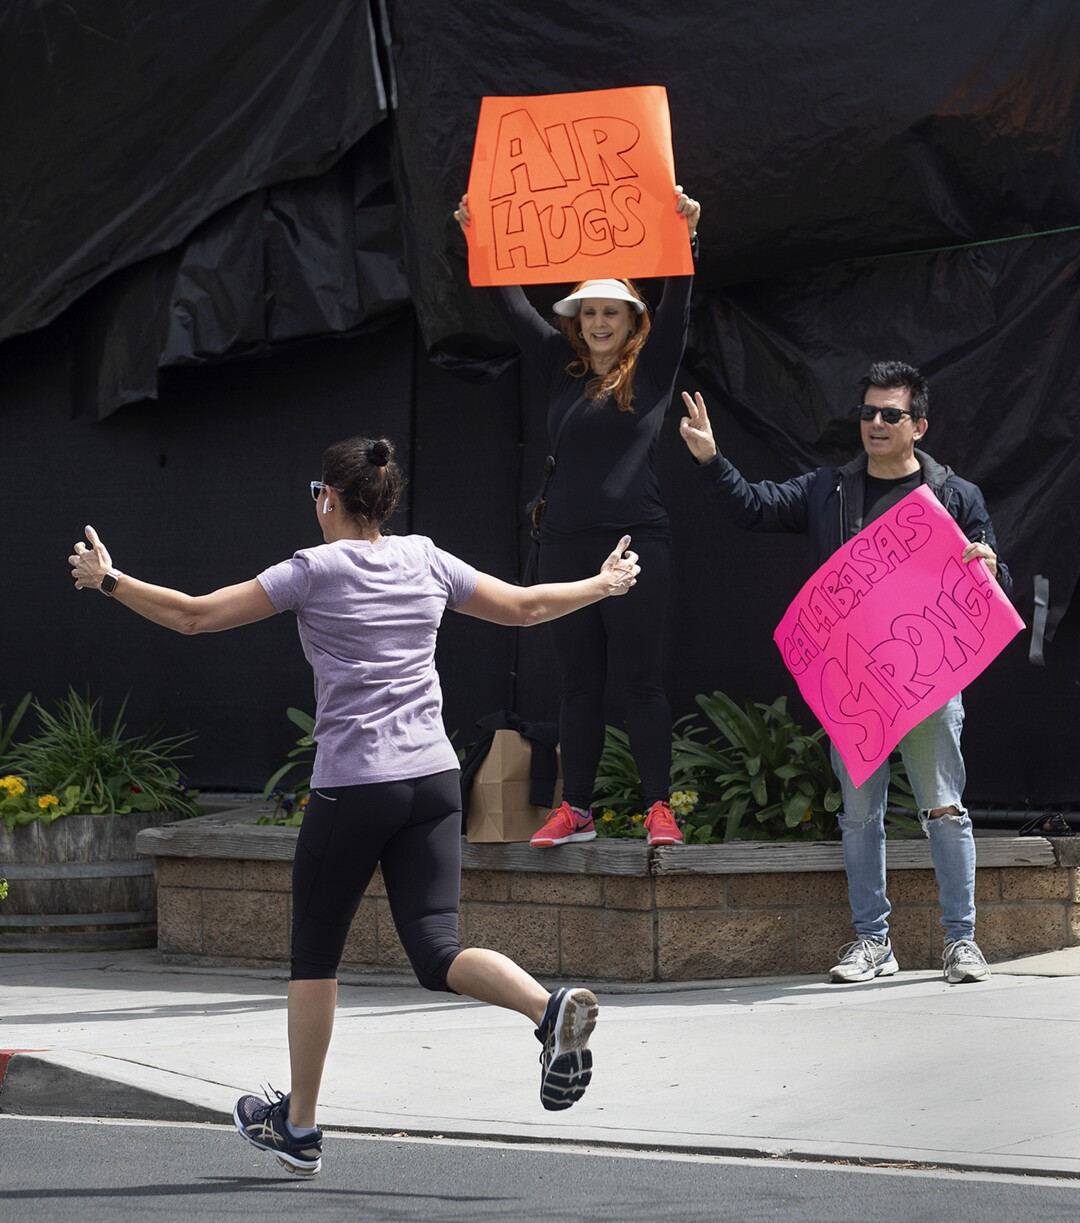 Juliann Hartman, center, and her husband, Butch, do their part to cheer people up during the pandemic by holding signs of encouragement on Calabasas Road in Calabasas.